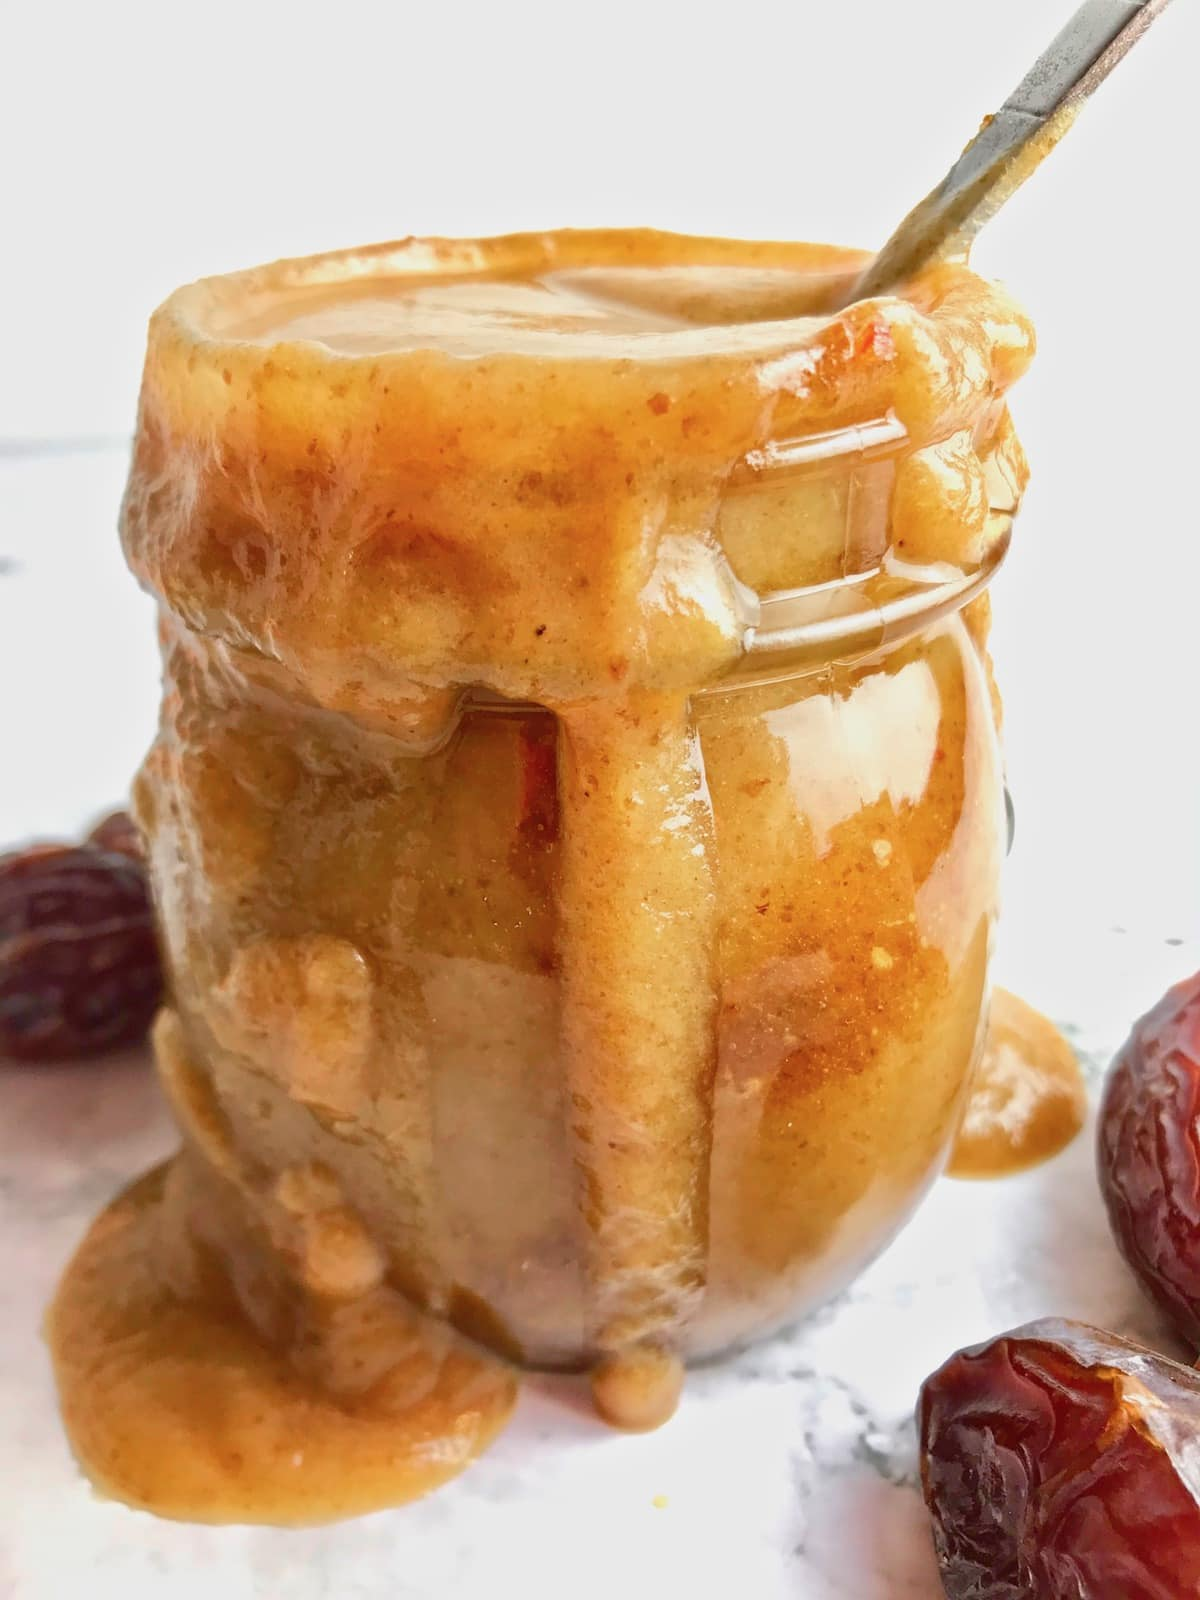 Vegan caramel sauce overflowing in a glass jar, surrounded by dates on a table.